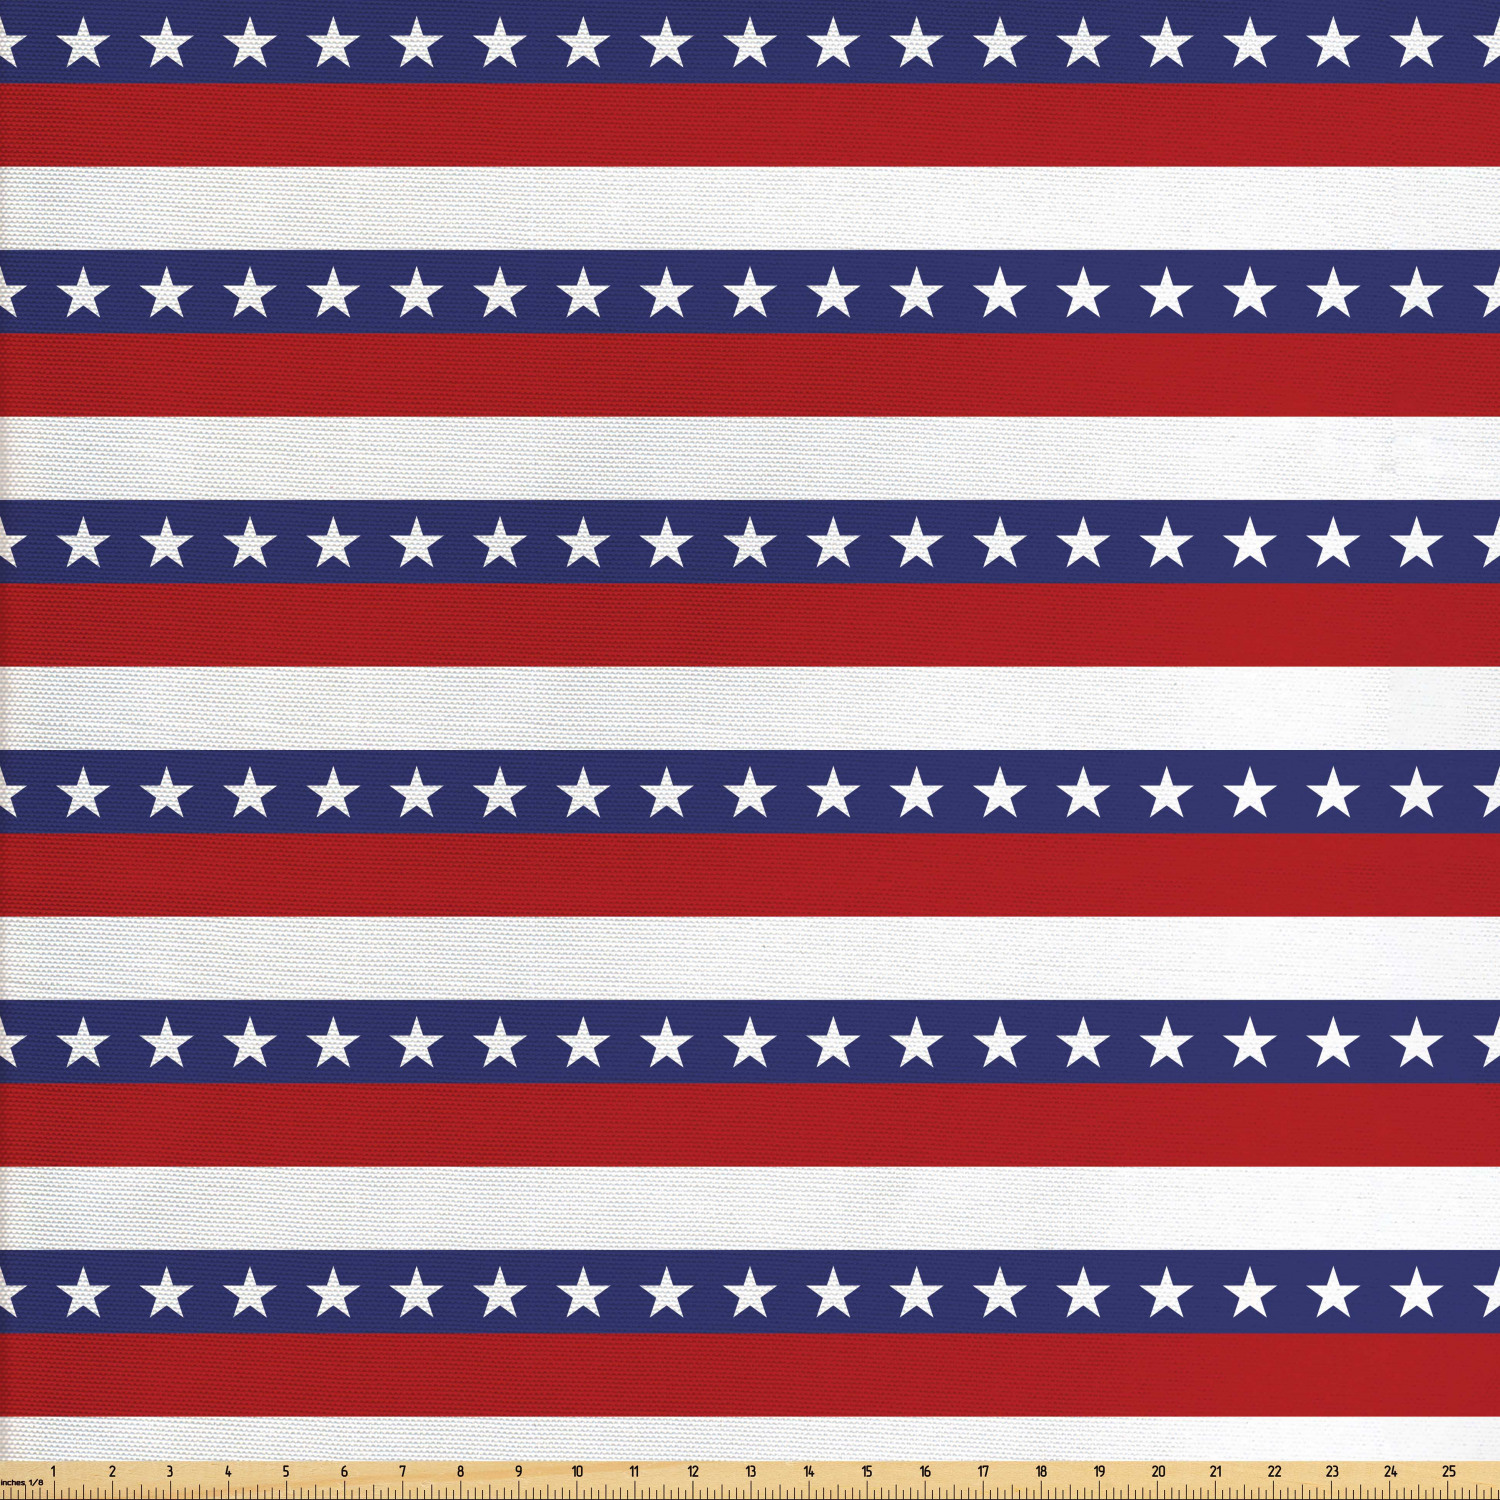 July 4th Fabric Wavy Stripes Red Blue /& Metallic Silver Stars Independence USA